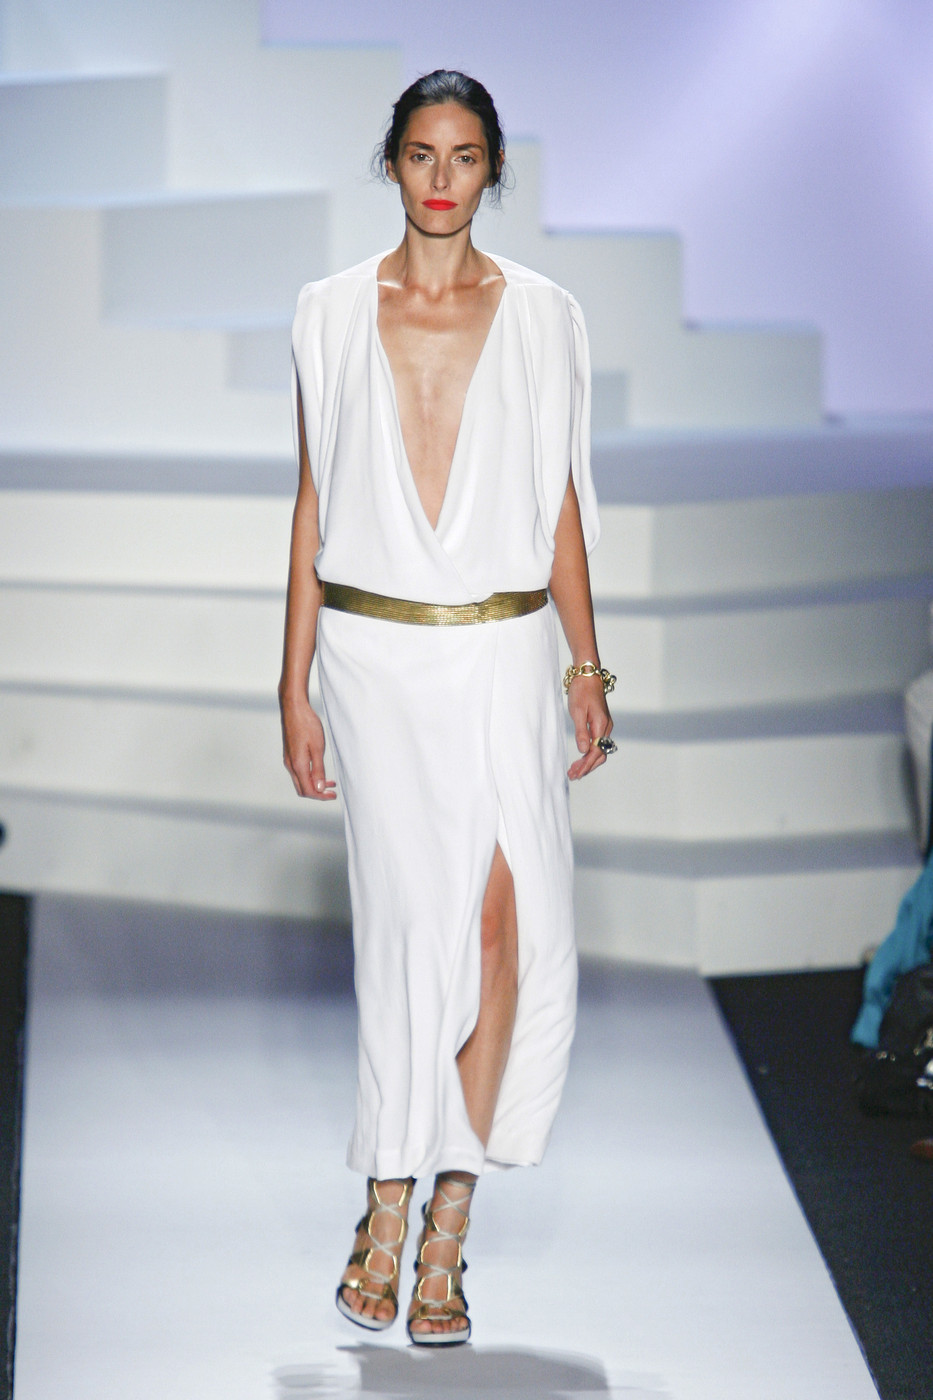 via fashioned by love | Diane von Furstenberg Spring/Summer 2011 White